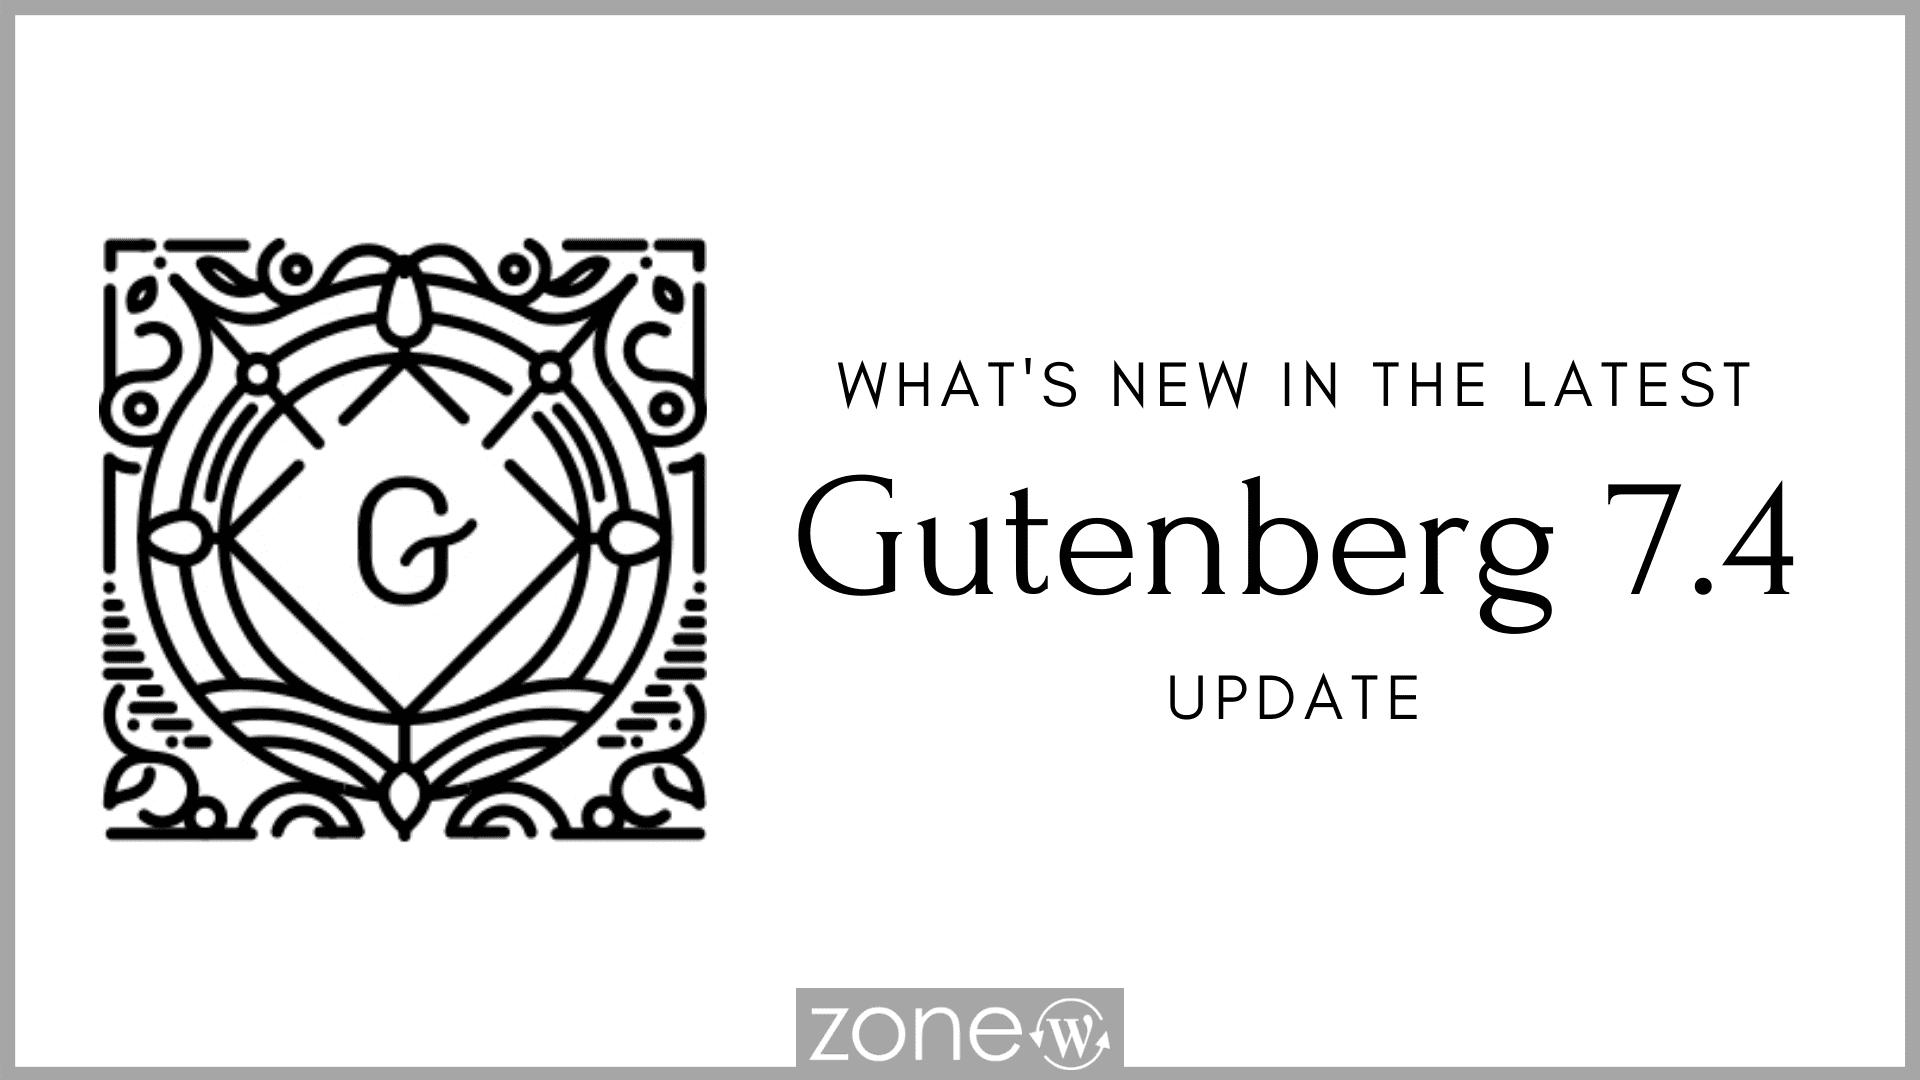 What's New in the Latest Gutenberg 7.4 Update